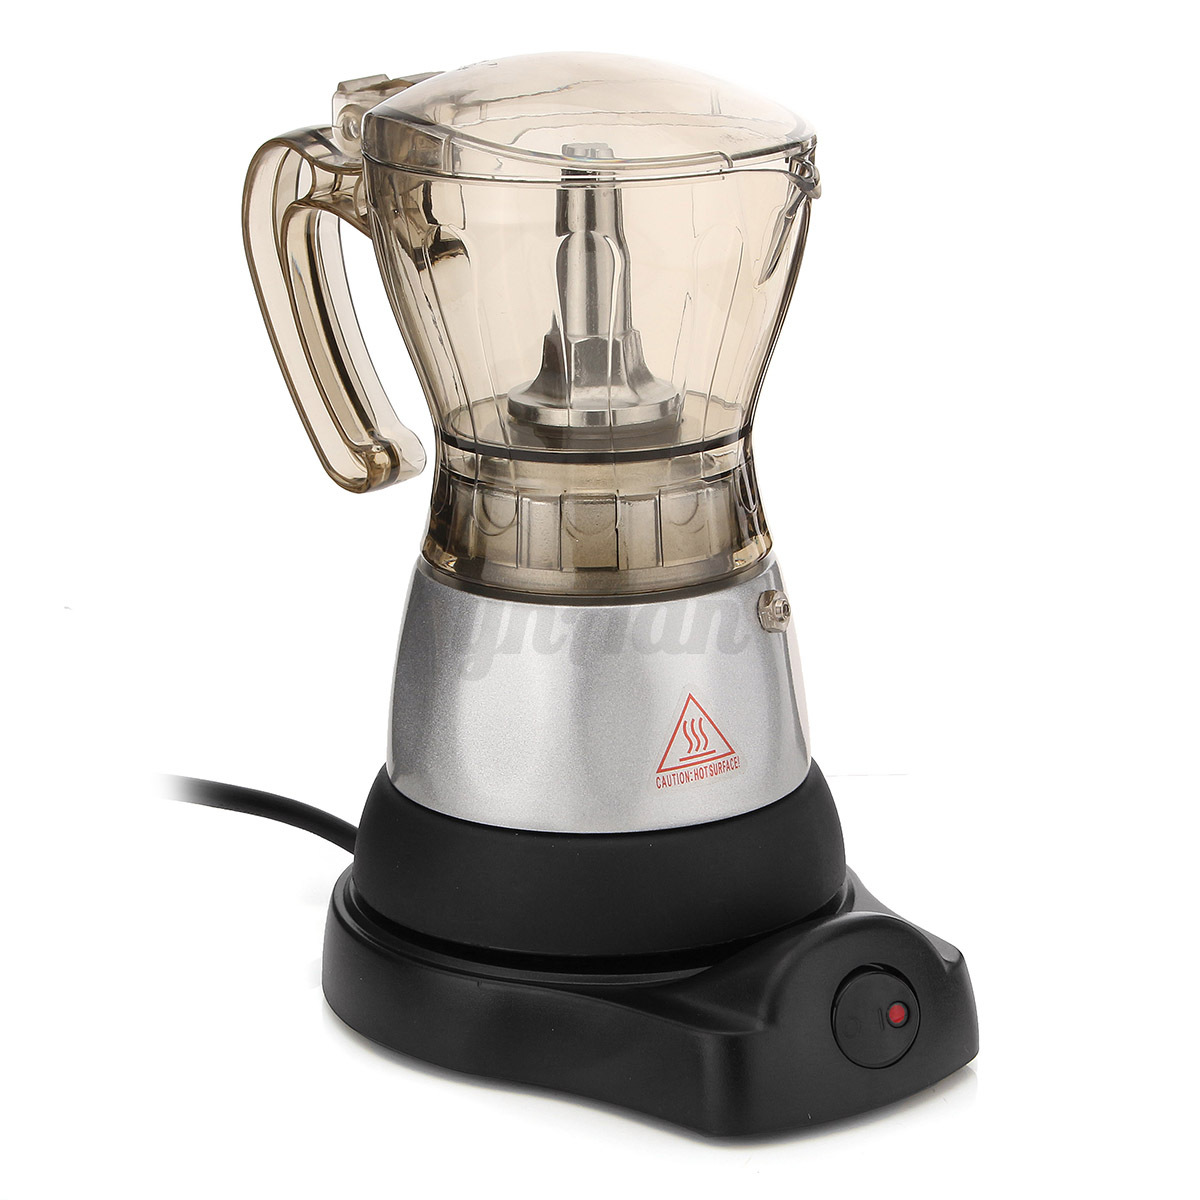 Coffee Maker Home Automatic Handmade Stainless Steel 4 Cup